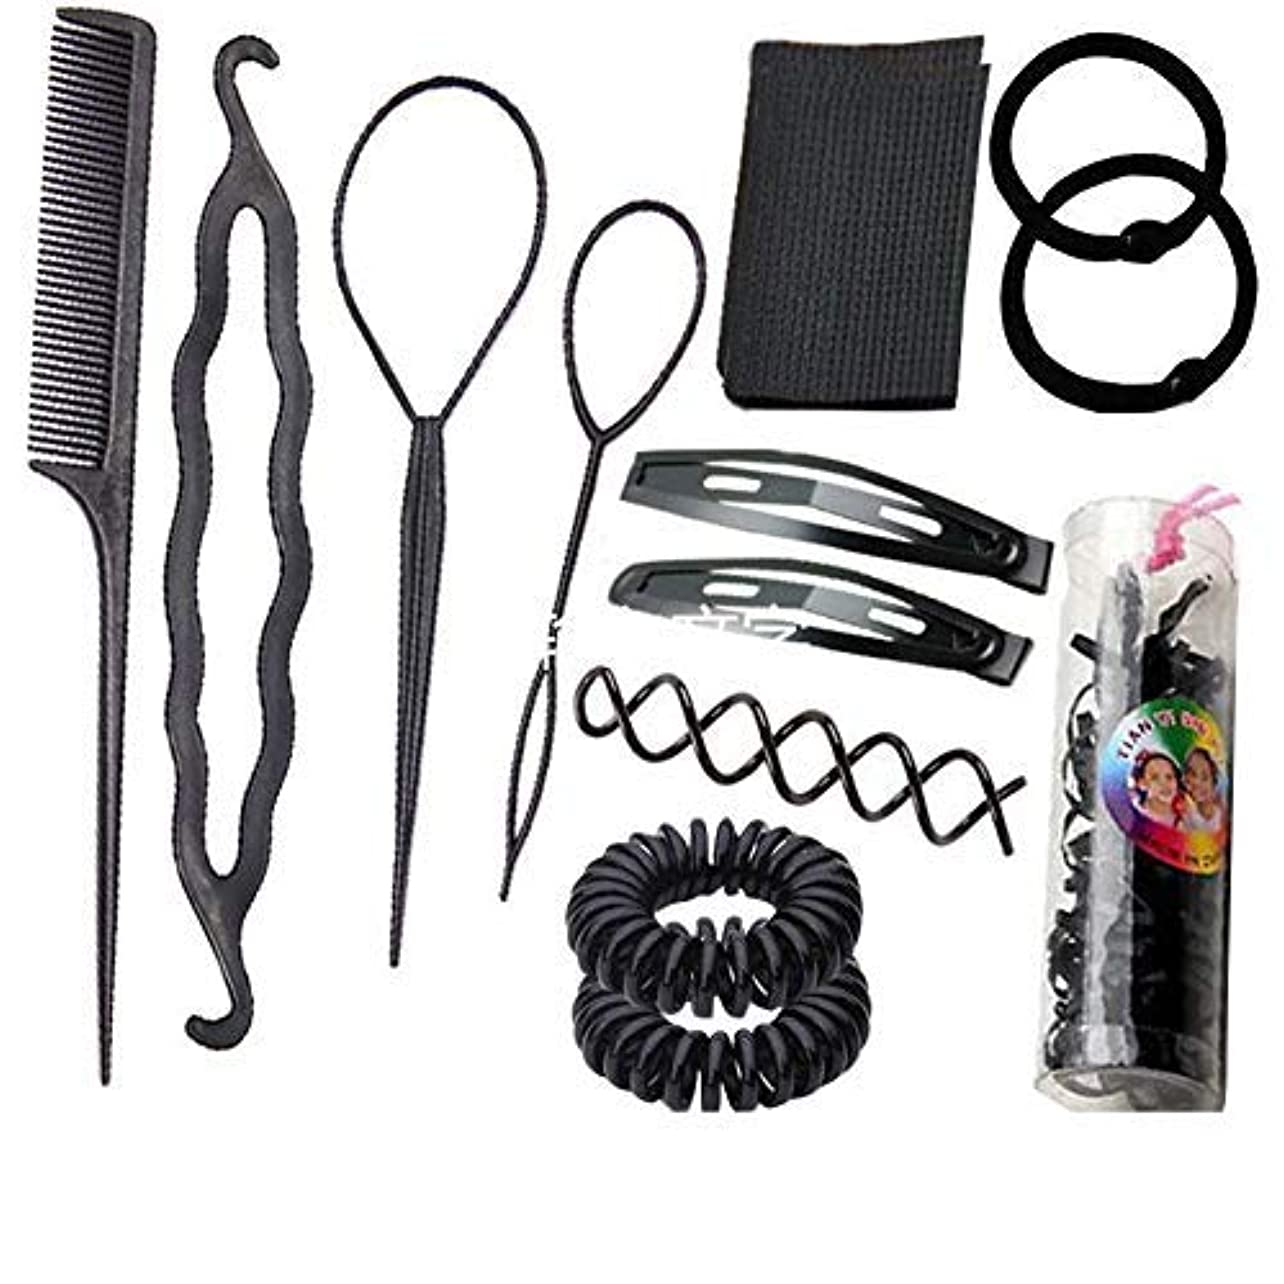 限界恥ずかしさ金銭的1 Set Black 13 in 1 Hair Style Making Accessories Kits Hair Comb Metal Hairpins Hair Tools Hair Ropes Fringes...